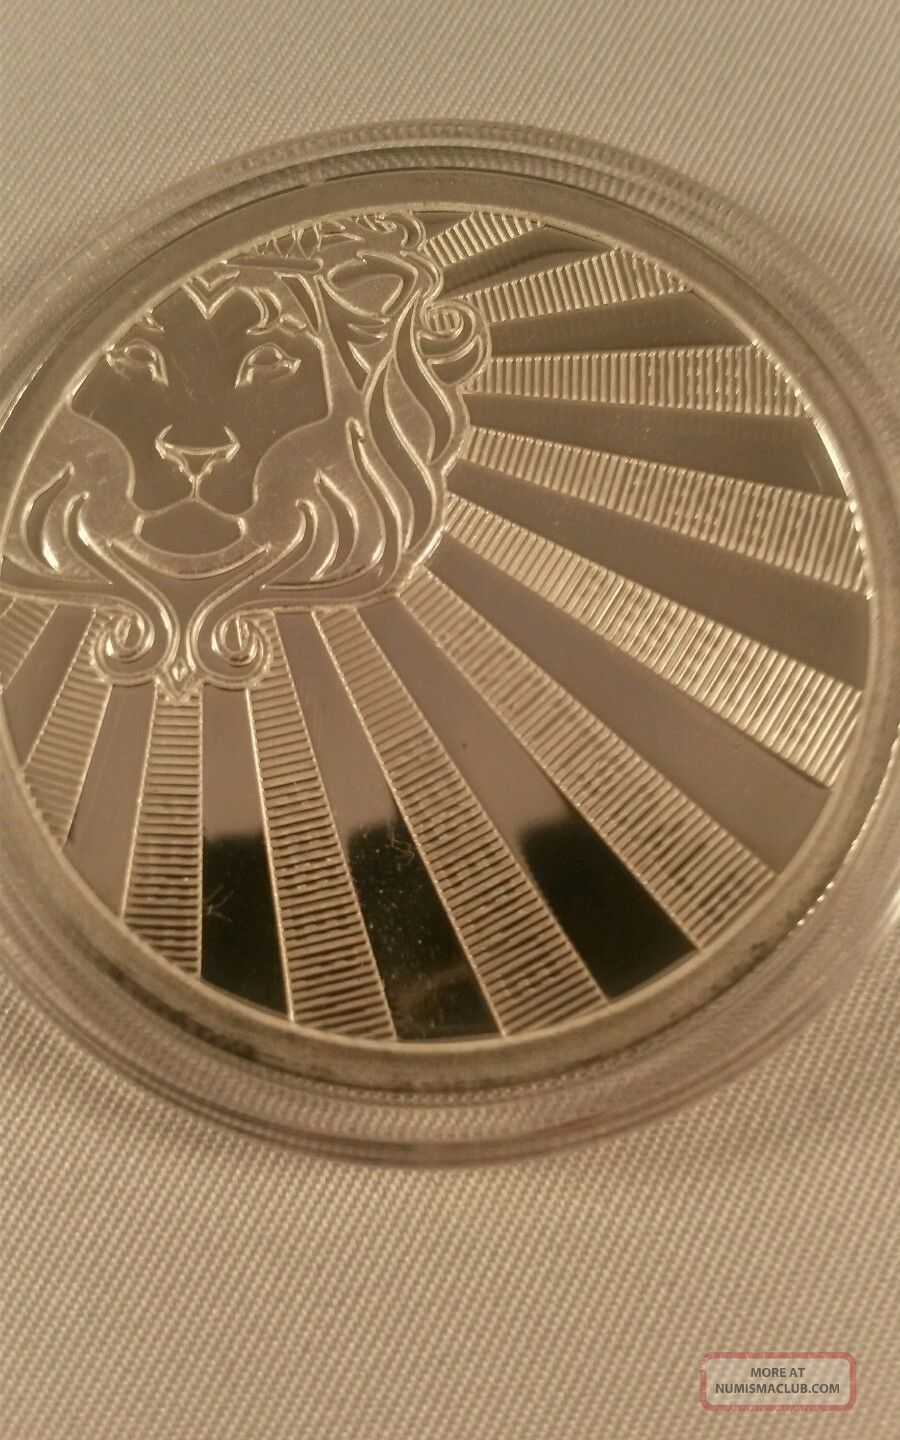 2 Scottsdale 1 Oz Reserve Round 999 Silver Bu In Air